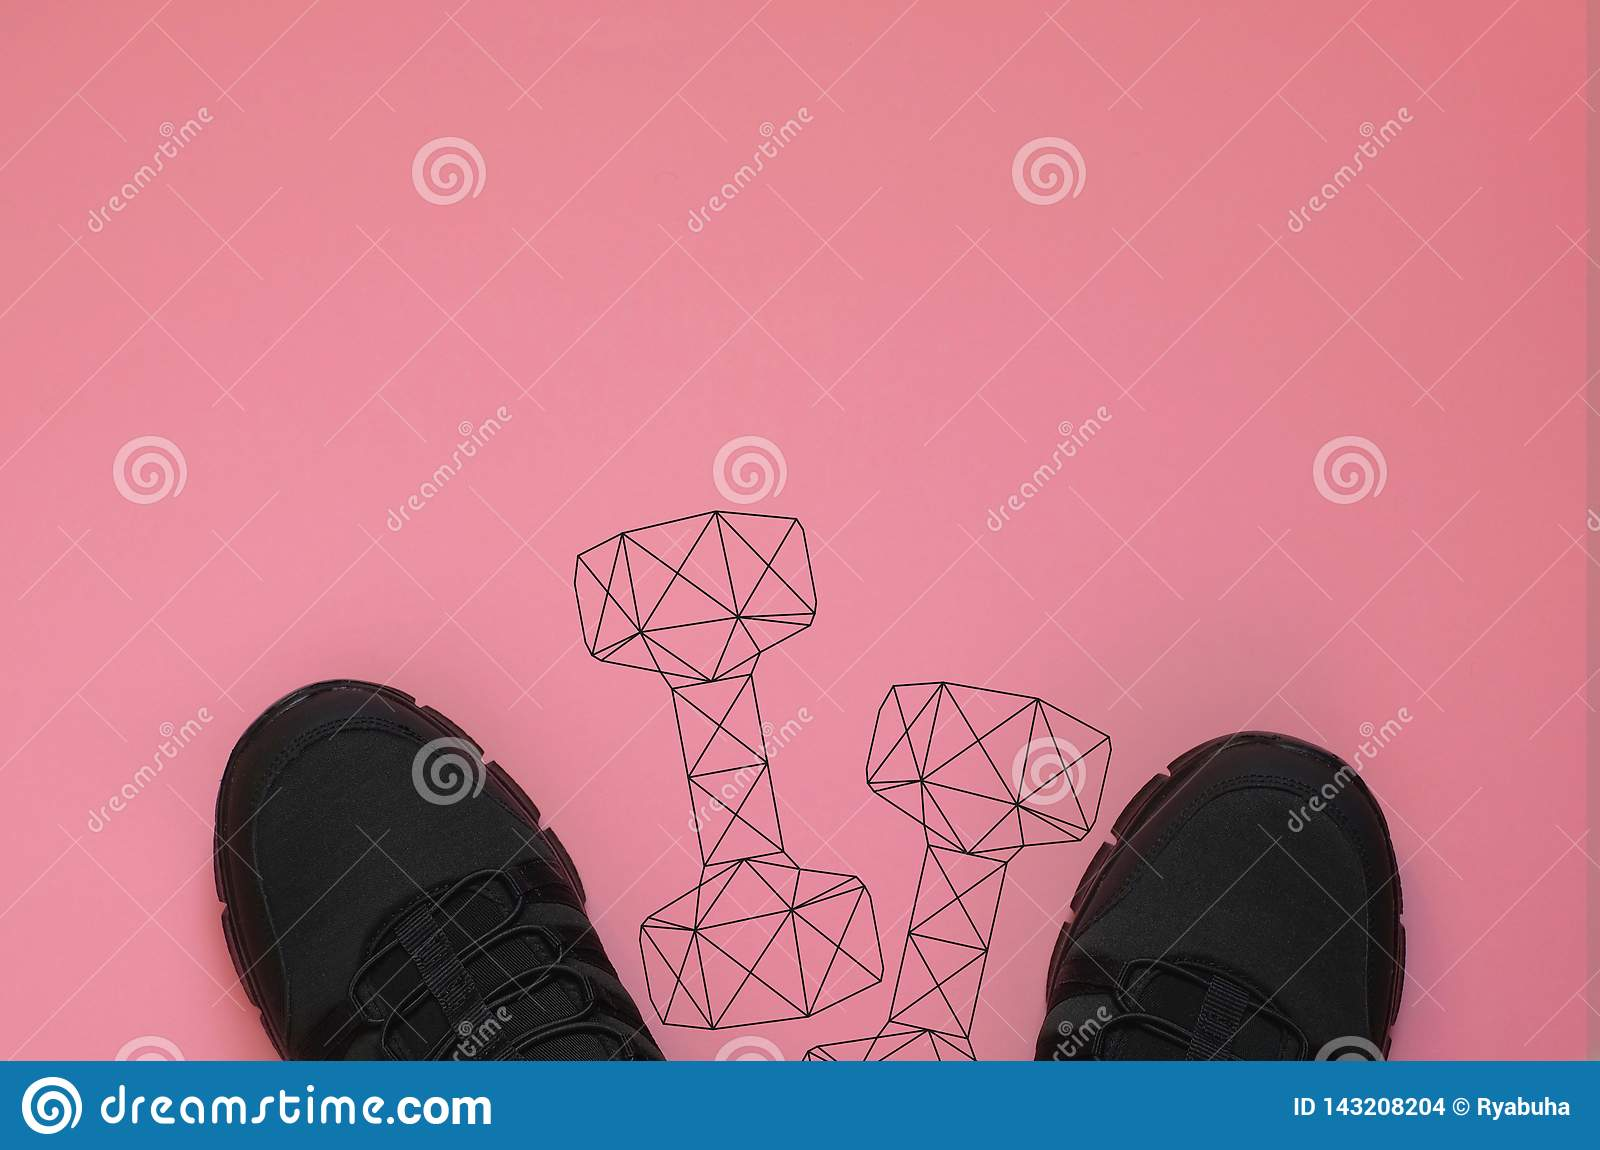 Black sneakers and polygonal gym dumbbell weights on coral background